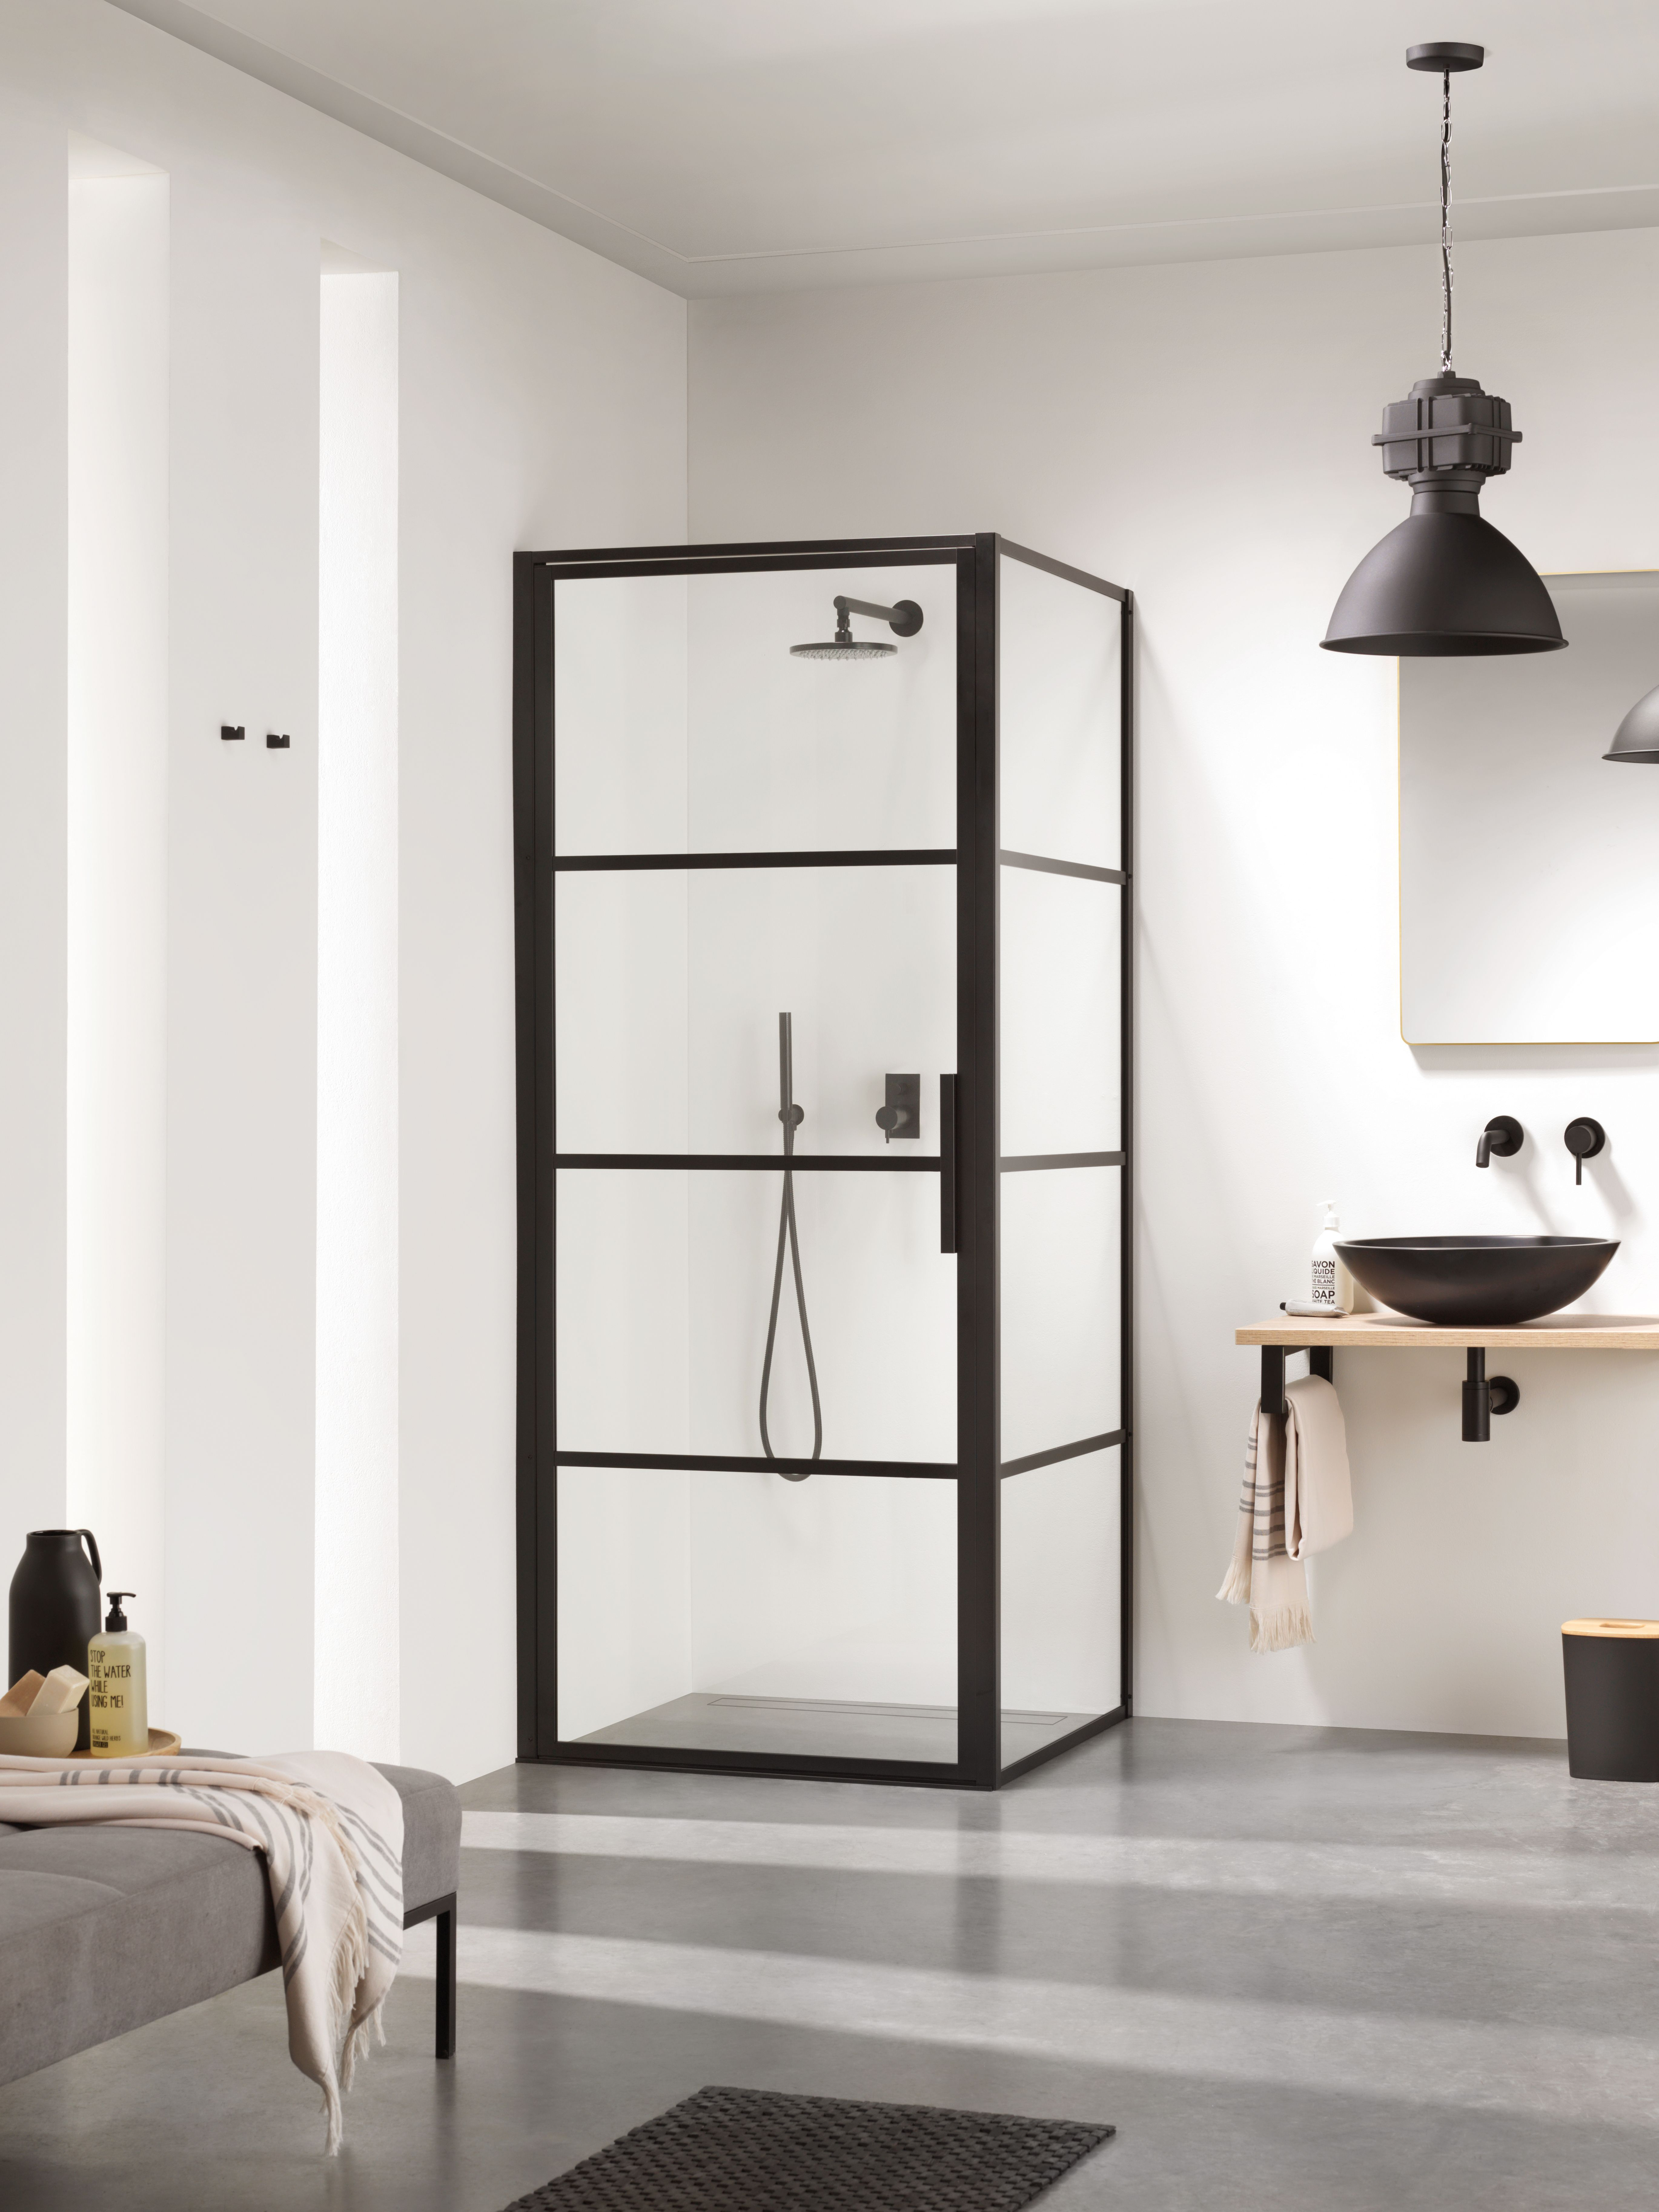 Recently The Trend For Glazed Shower Doors And Panels Featuring Slim Black Metal Frames Ex Bathroom Renovation Trends Bathroom Trends Framed Shower Enclosures